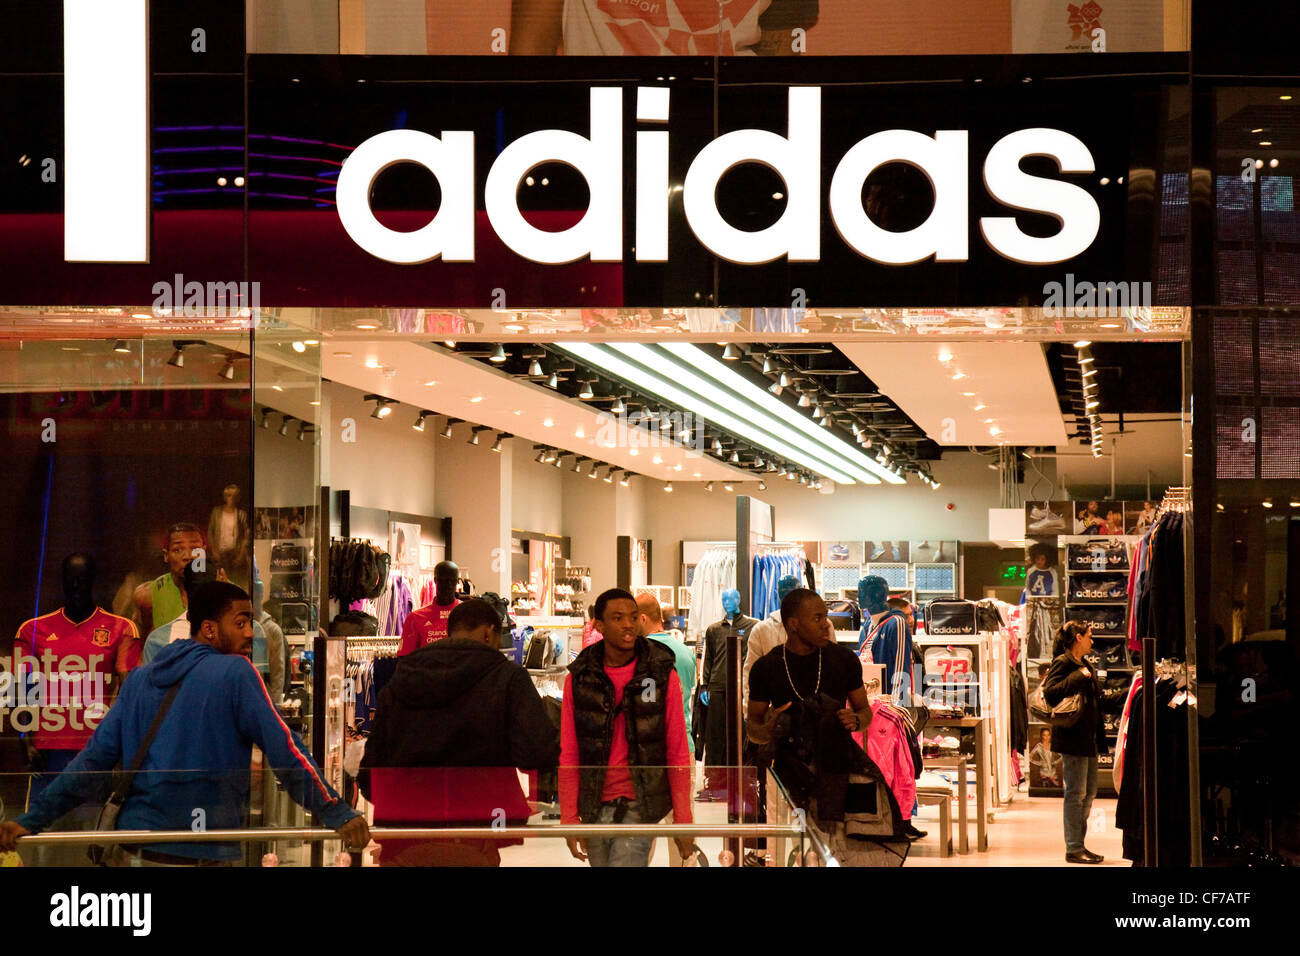 People standing outside the Adidas store, Westfield shopping centre Stratford London UK - Stock Image